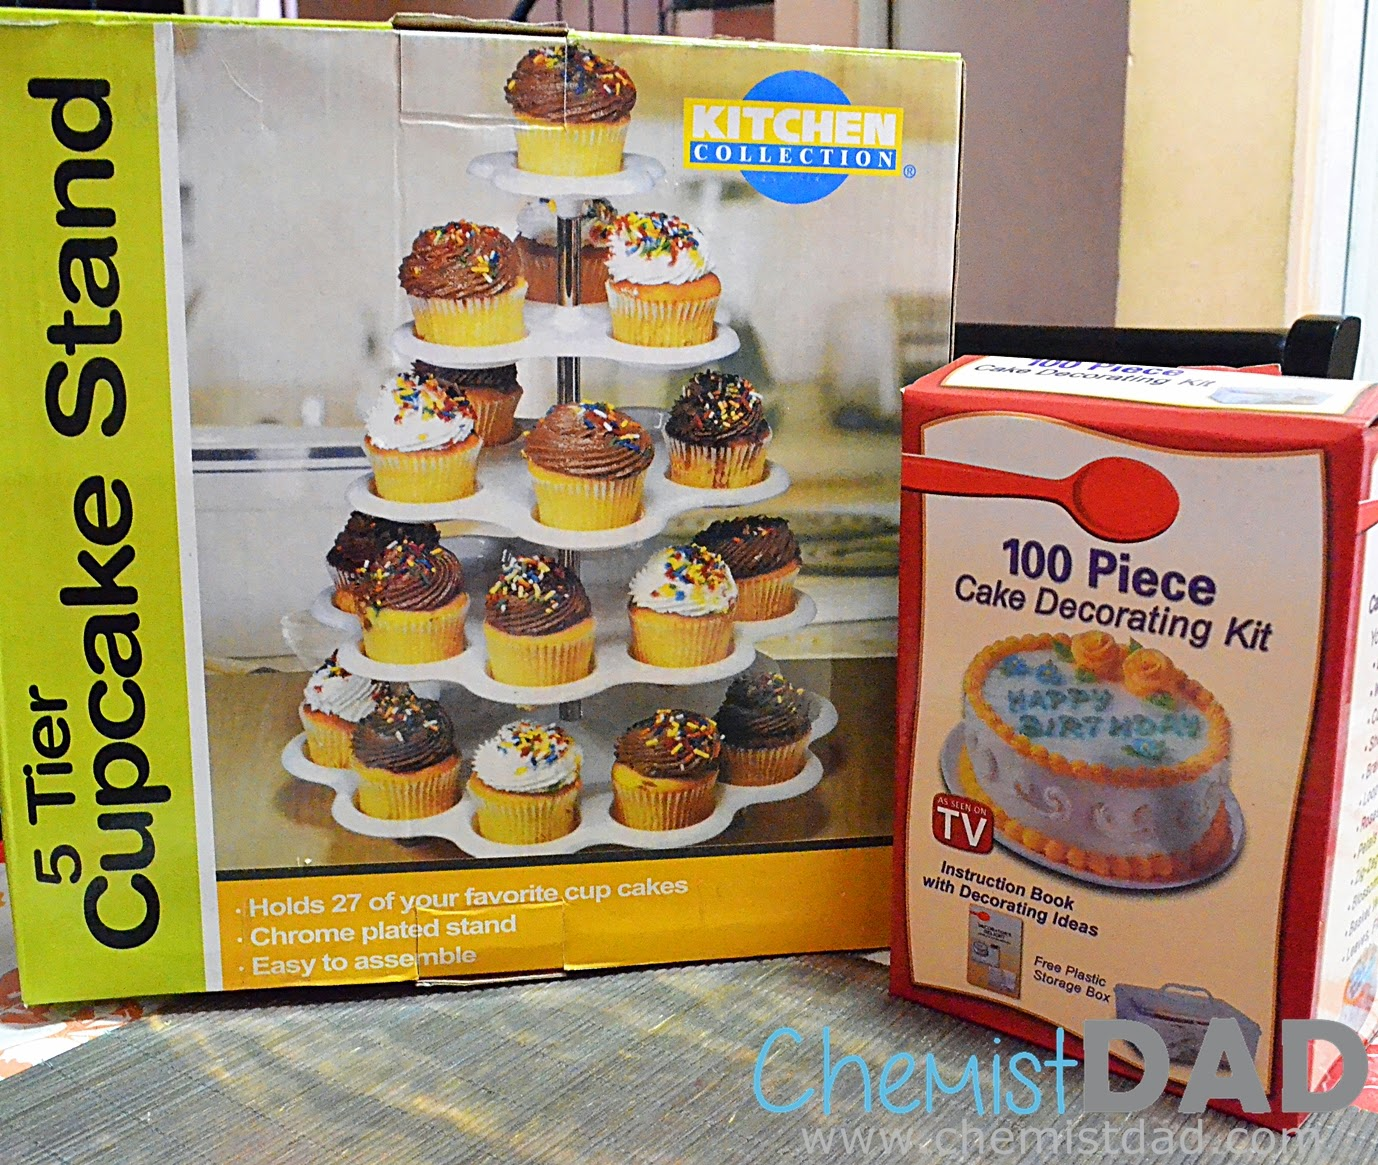 Cake Decorating Kit and Cupcake Stand